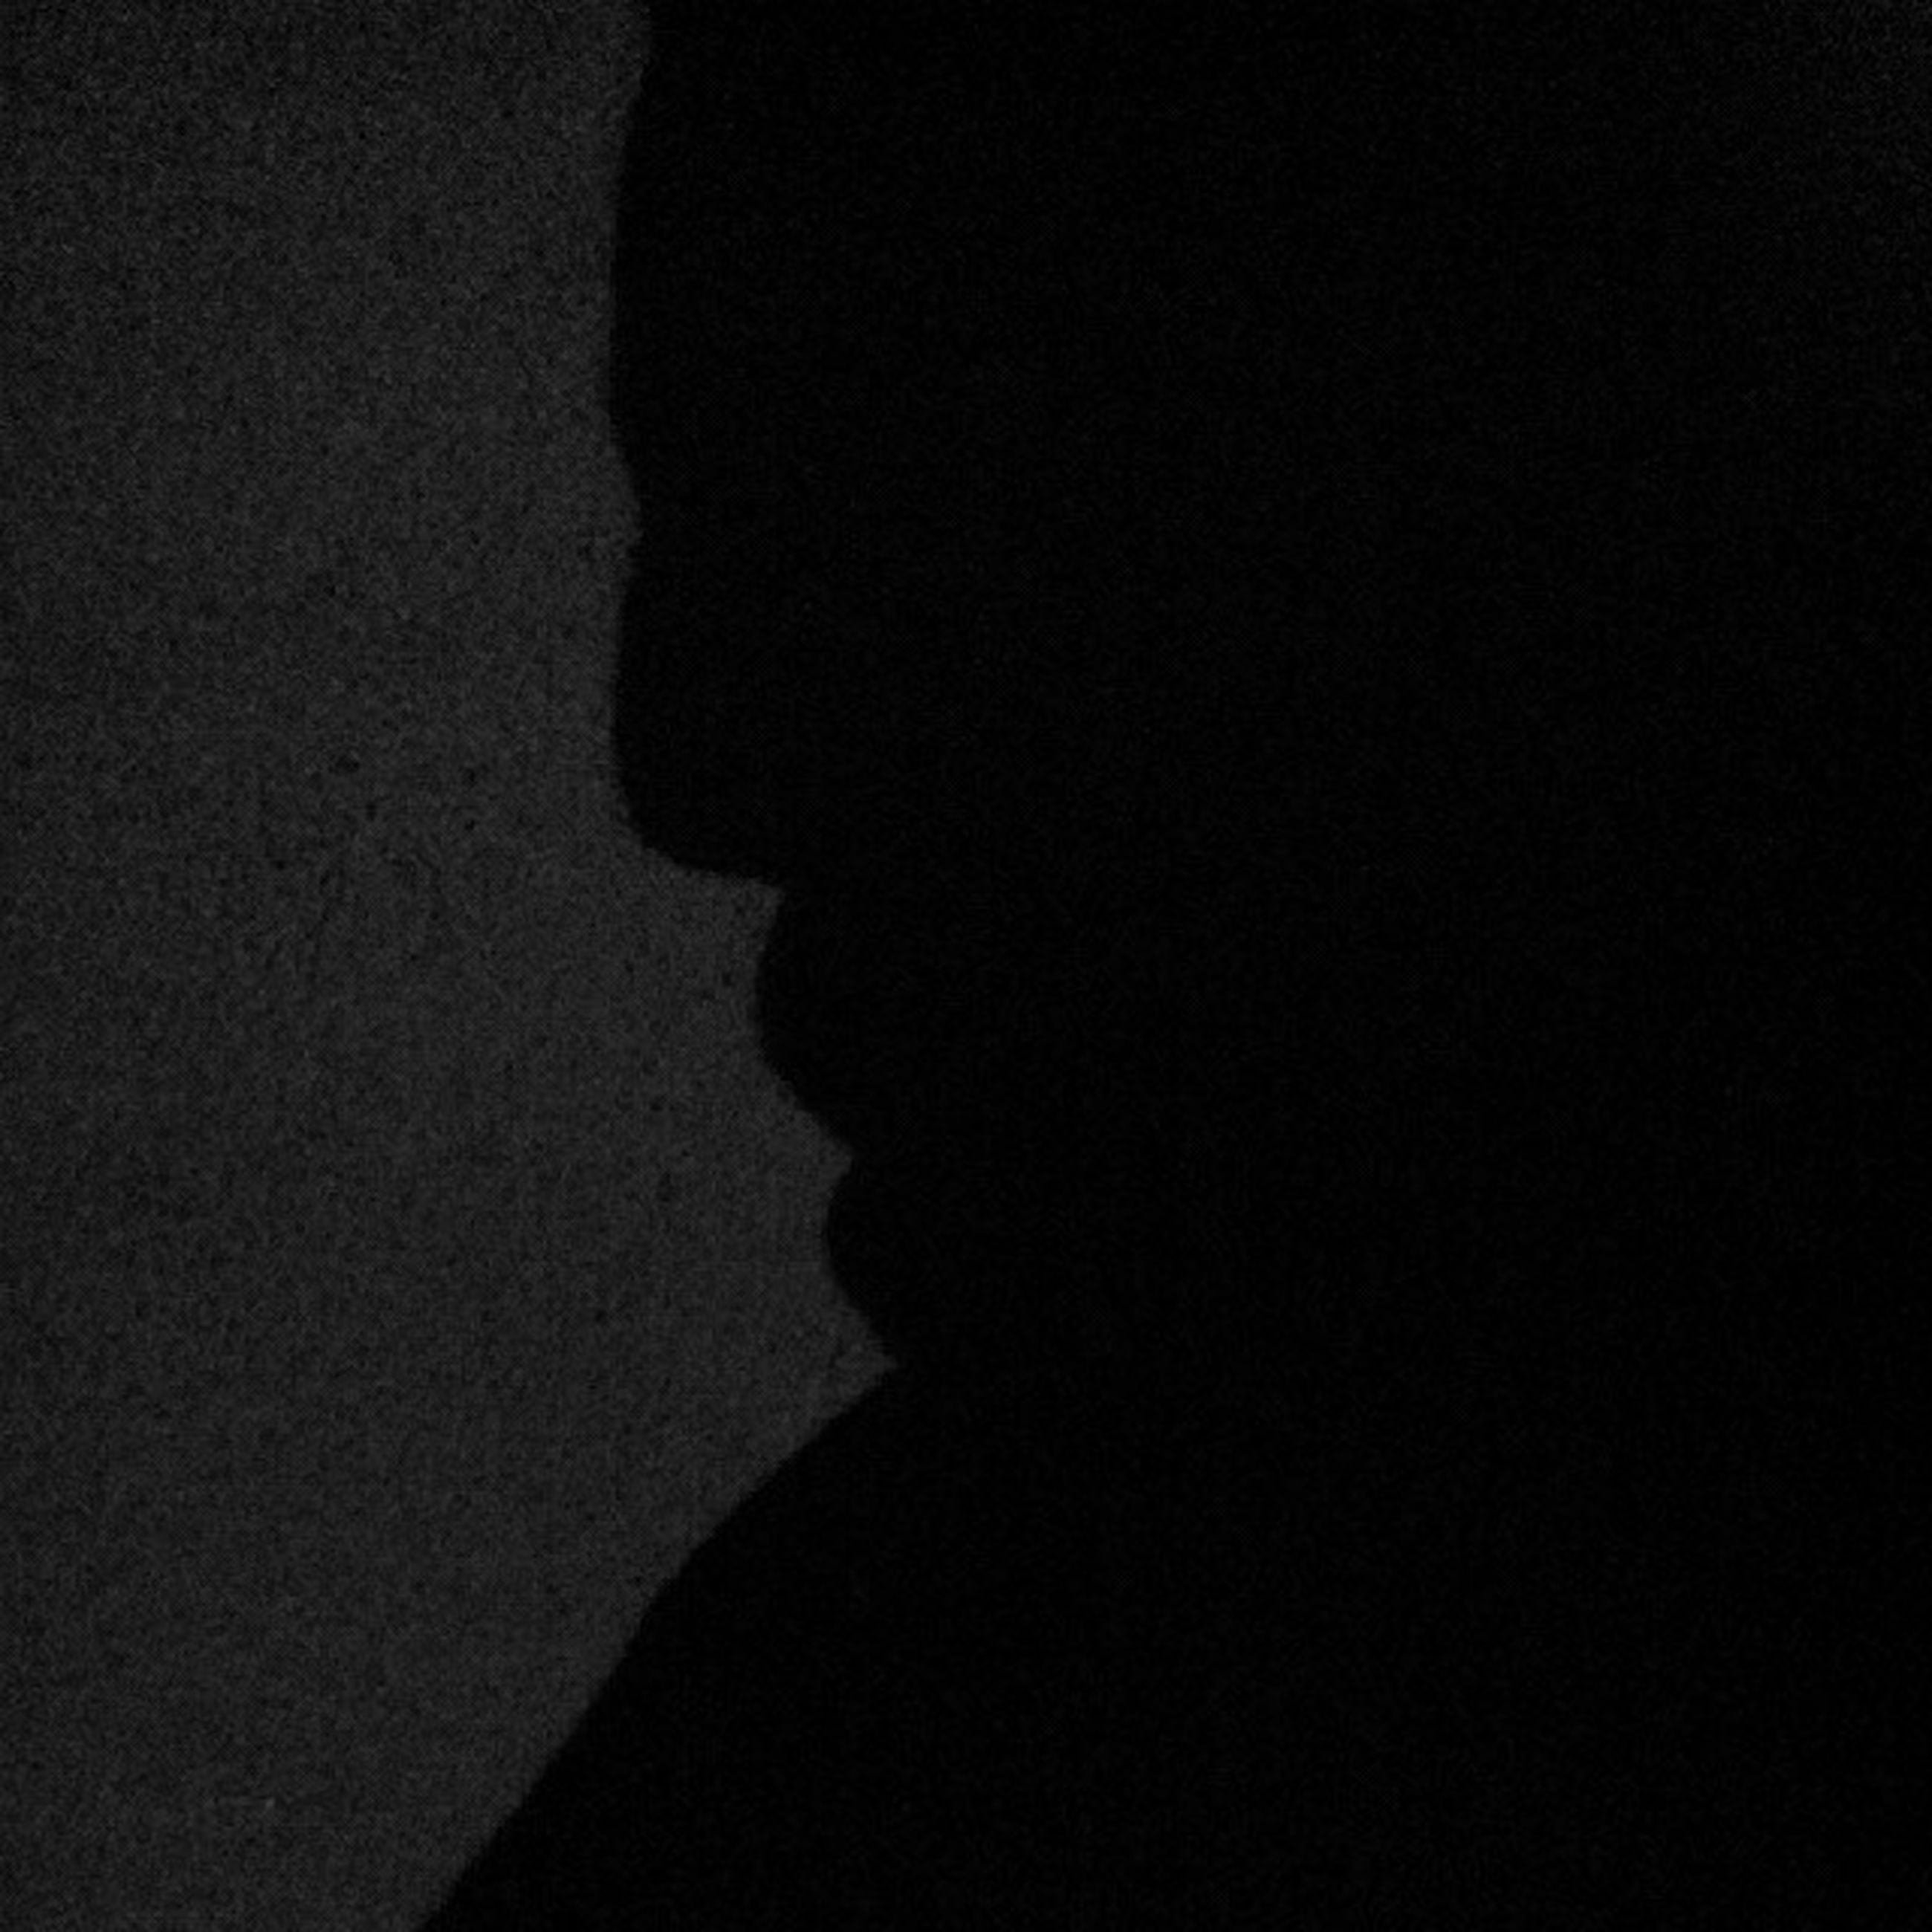 silhouette, lifestyles, copy space, shadow, dark, standing, men, leisure activity, unrecognizable person, indoors, person, night, outline, sunlight, focus on shadow, rear view, wall - building feature